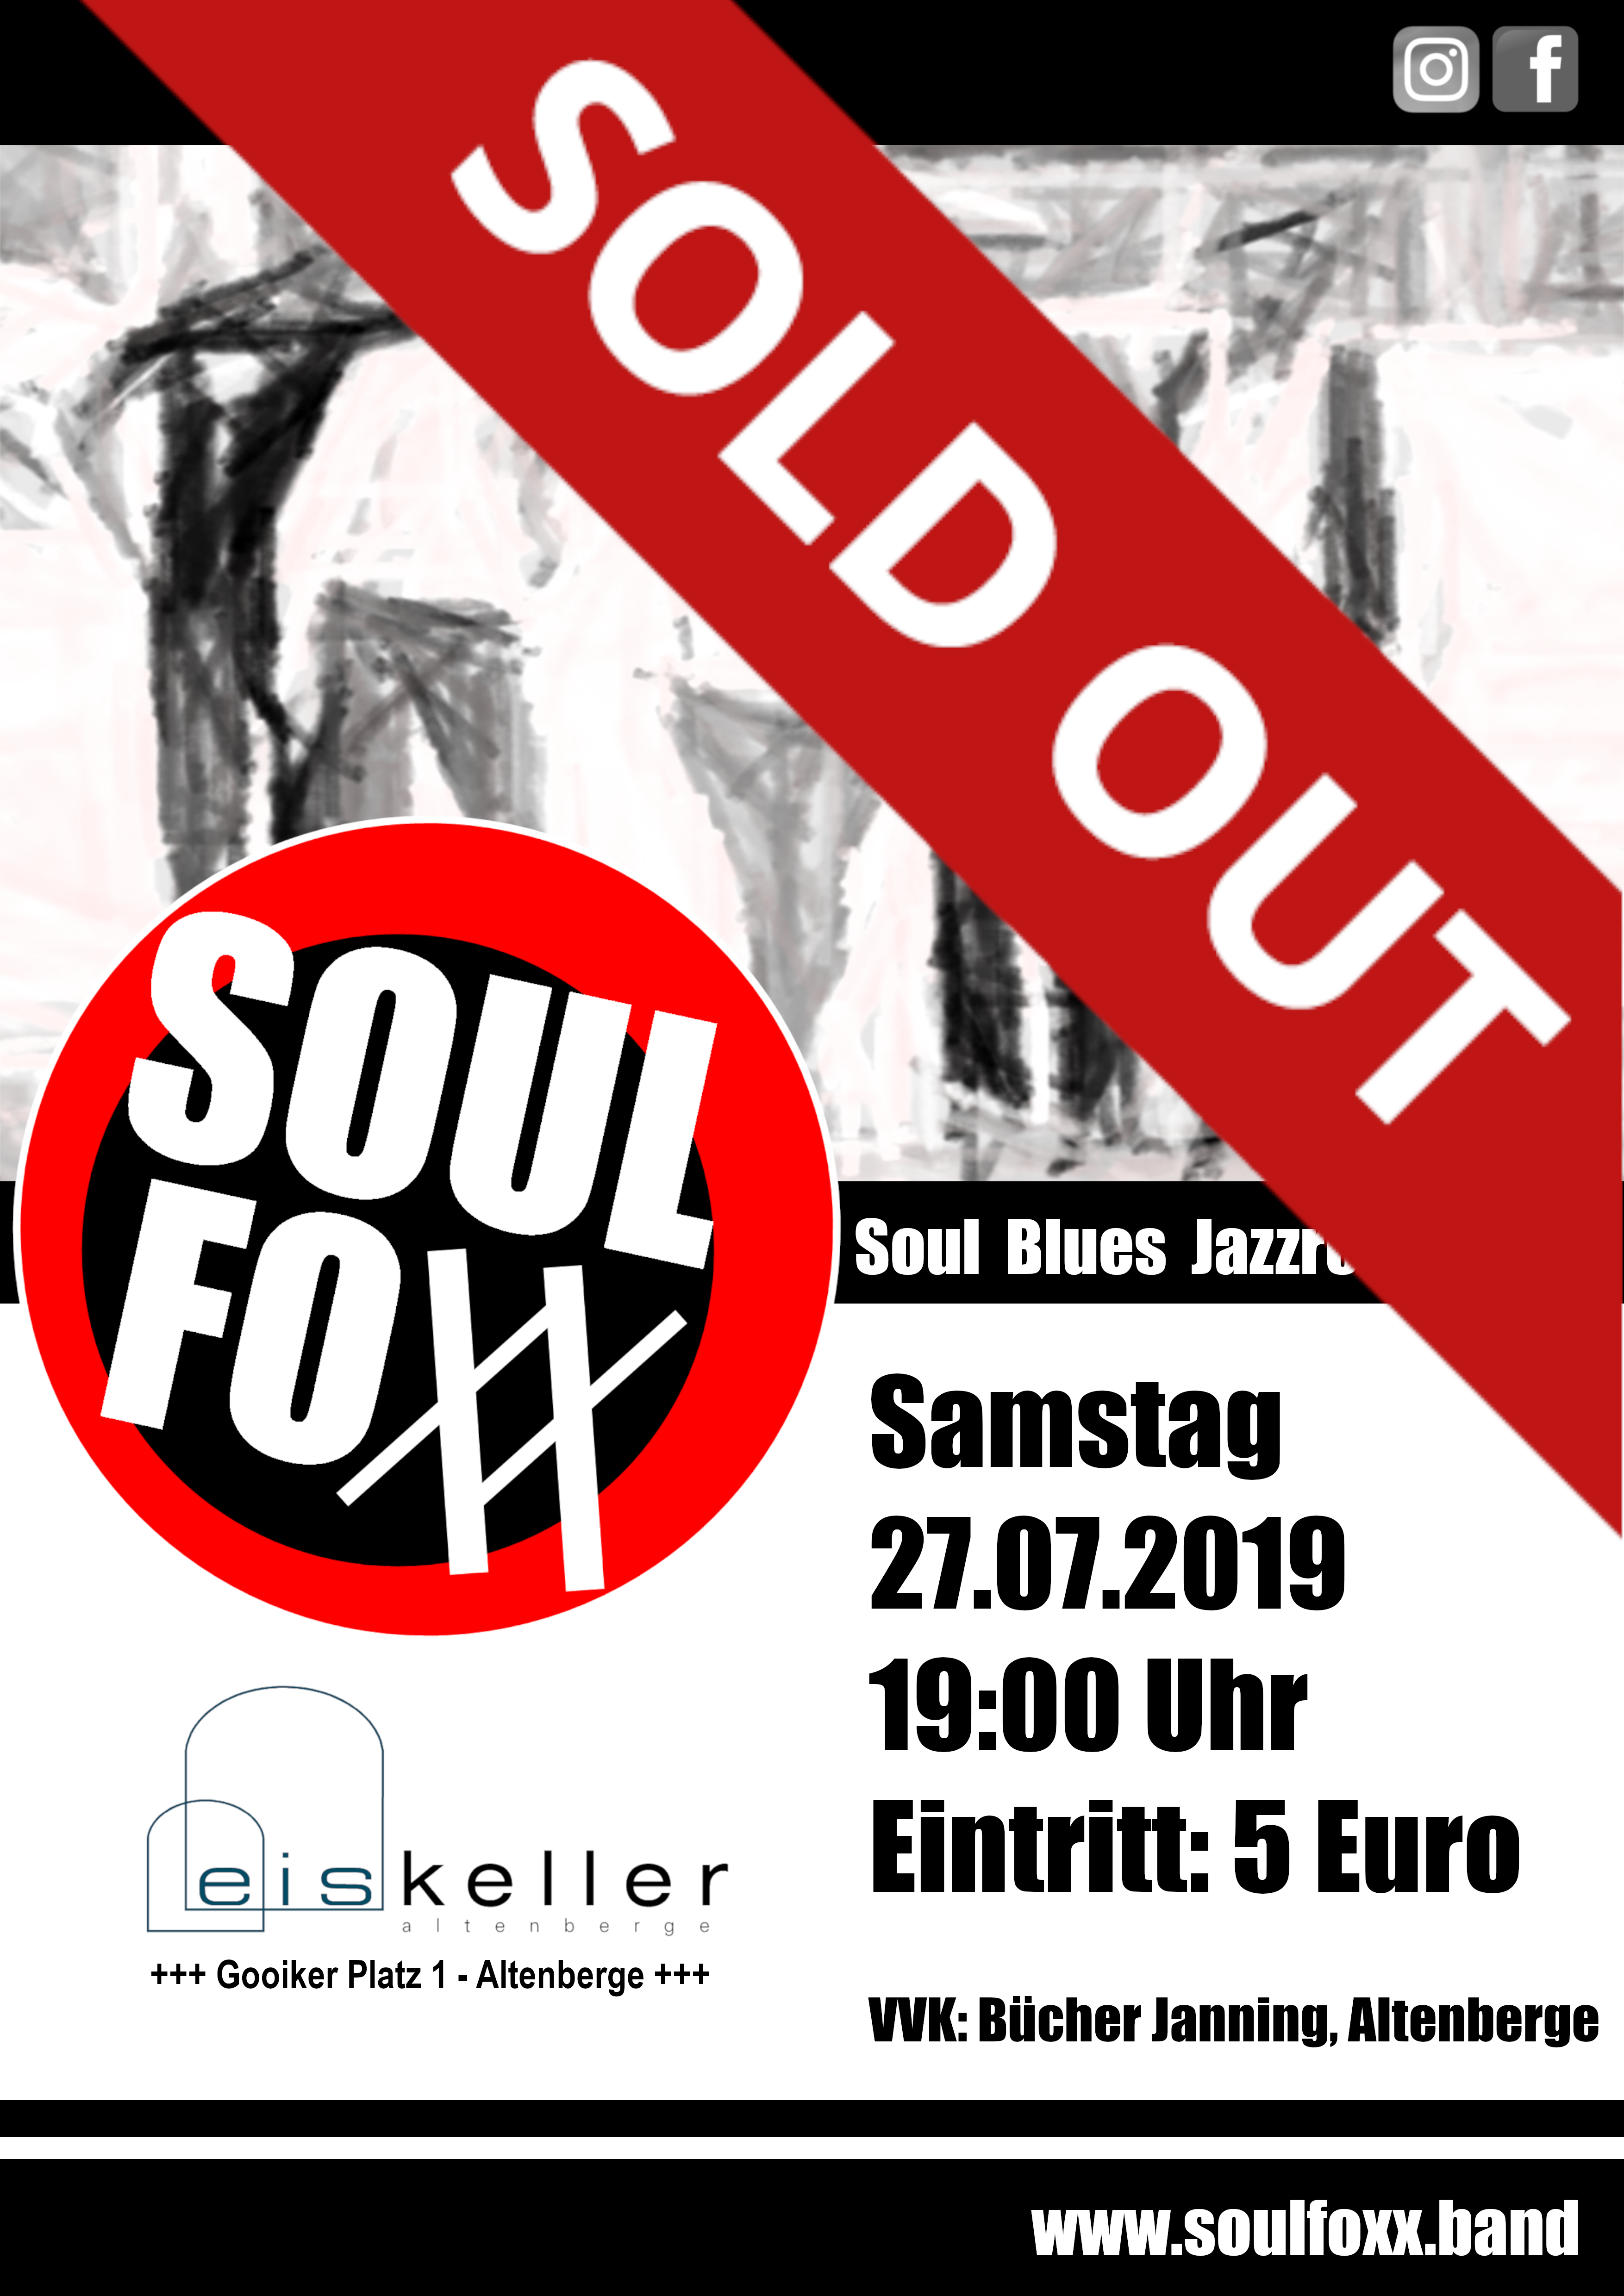 SOLD OUT! - SOULFOXX